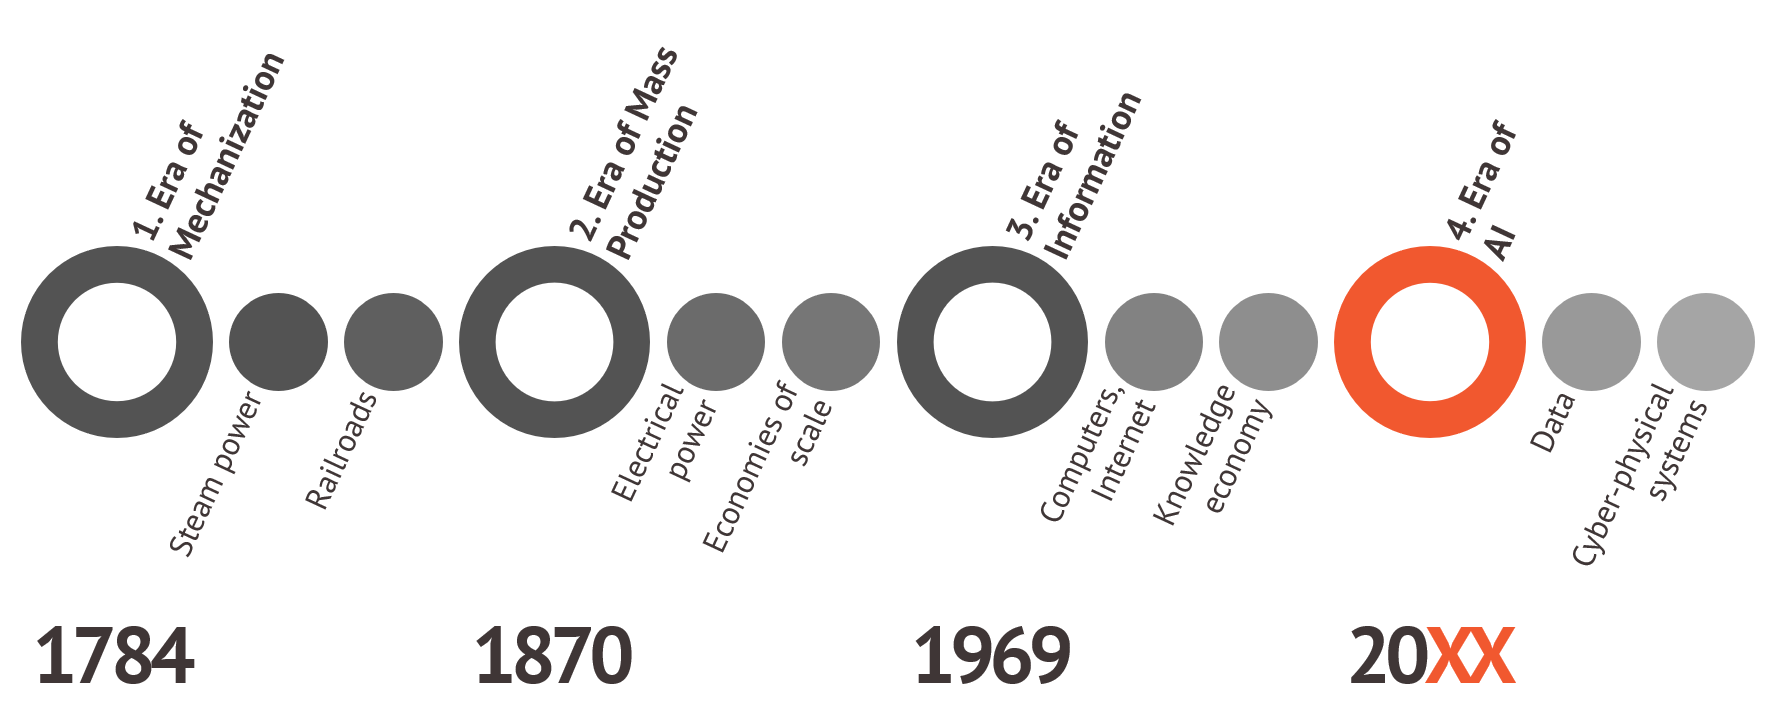 Figure 1 Timeline of the industrial revolutions